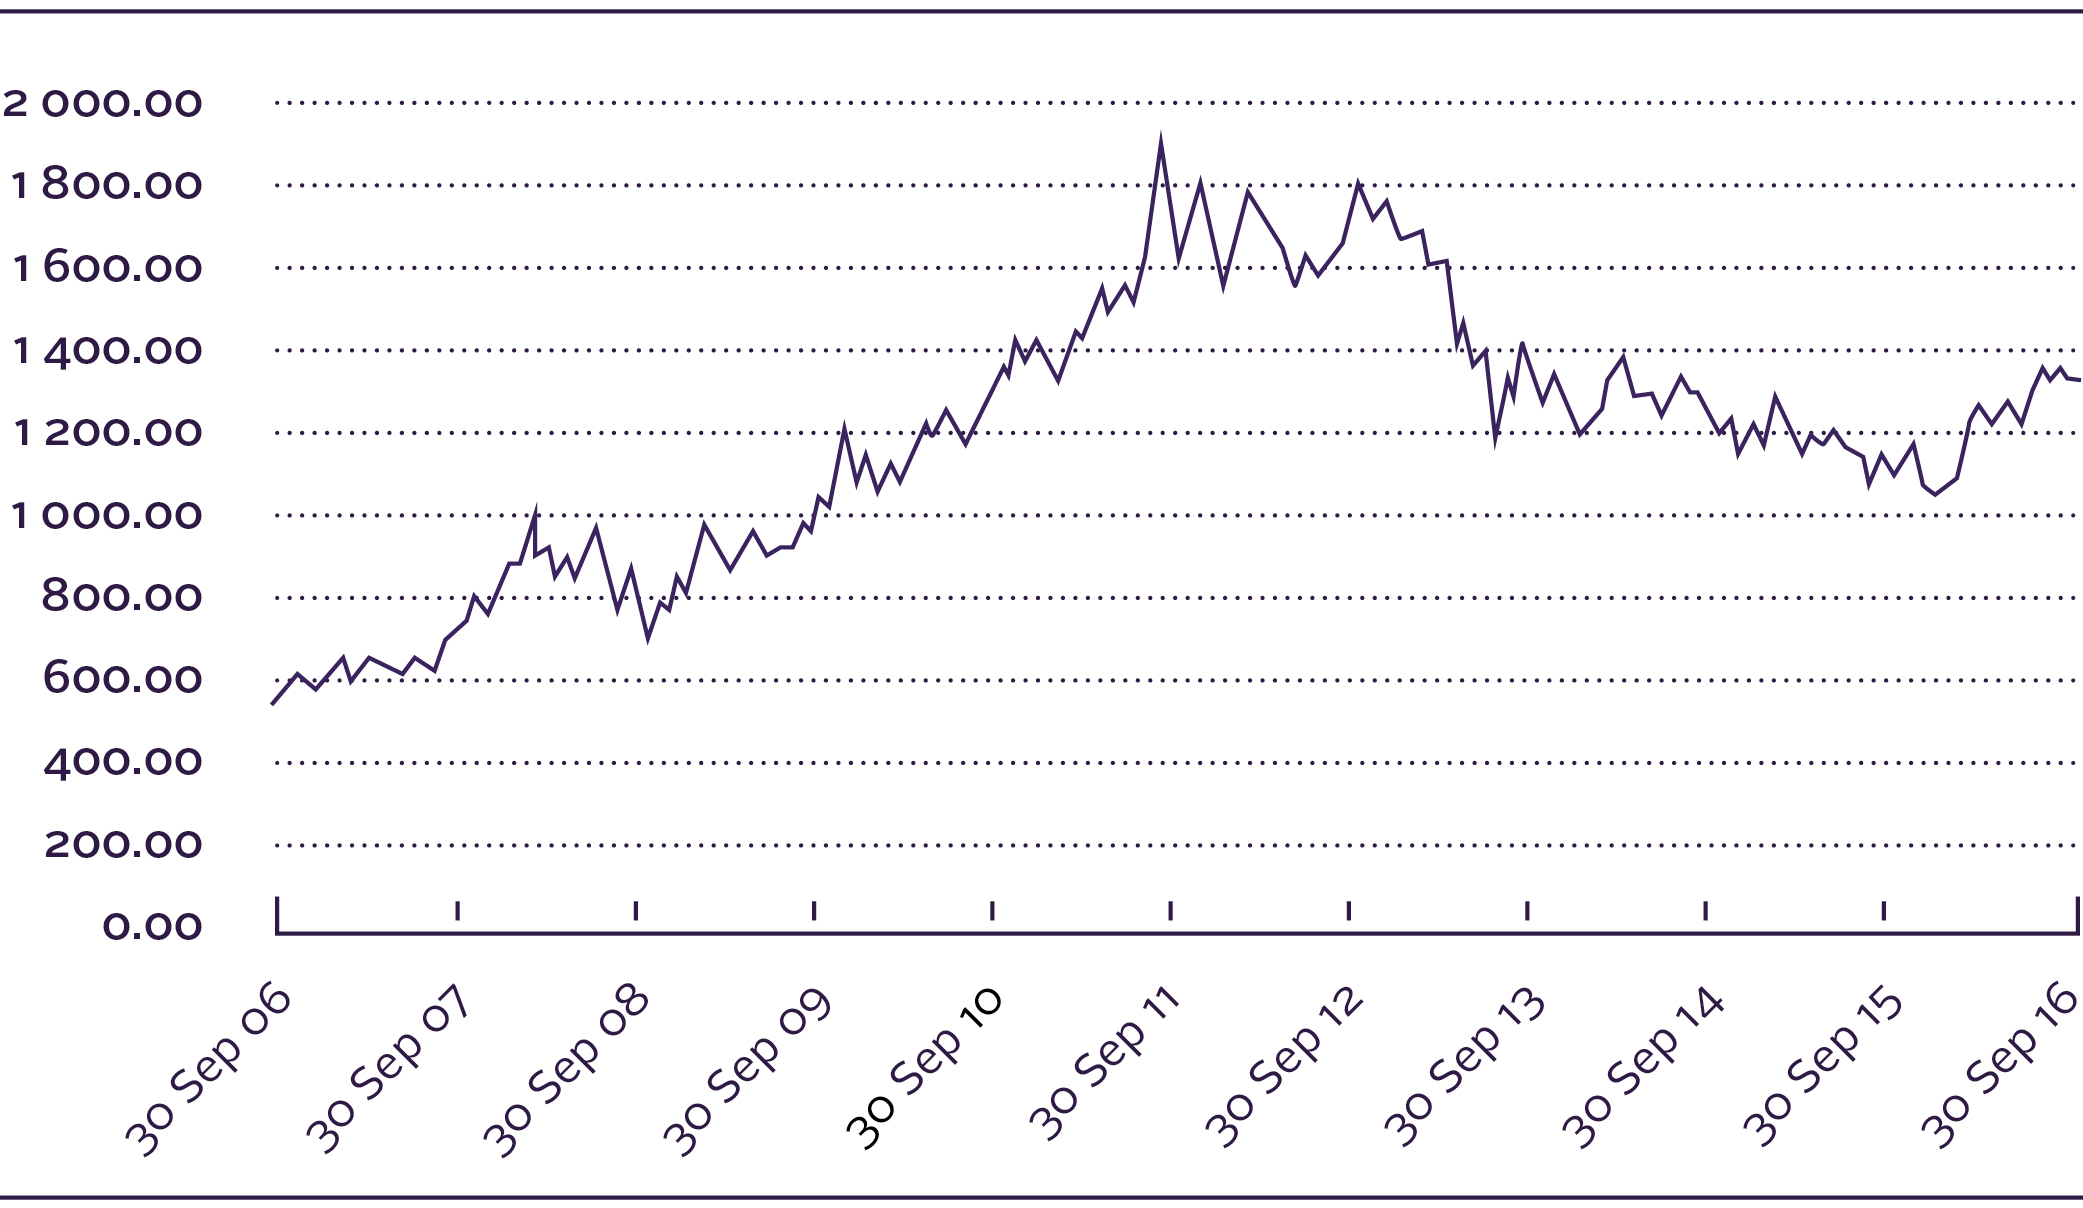 Figure 1: Ten-Year Chart of Gold Price in US Dollar [LBMA PM Fix]